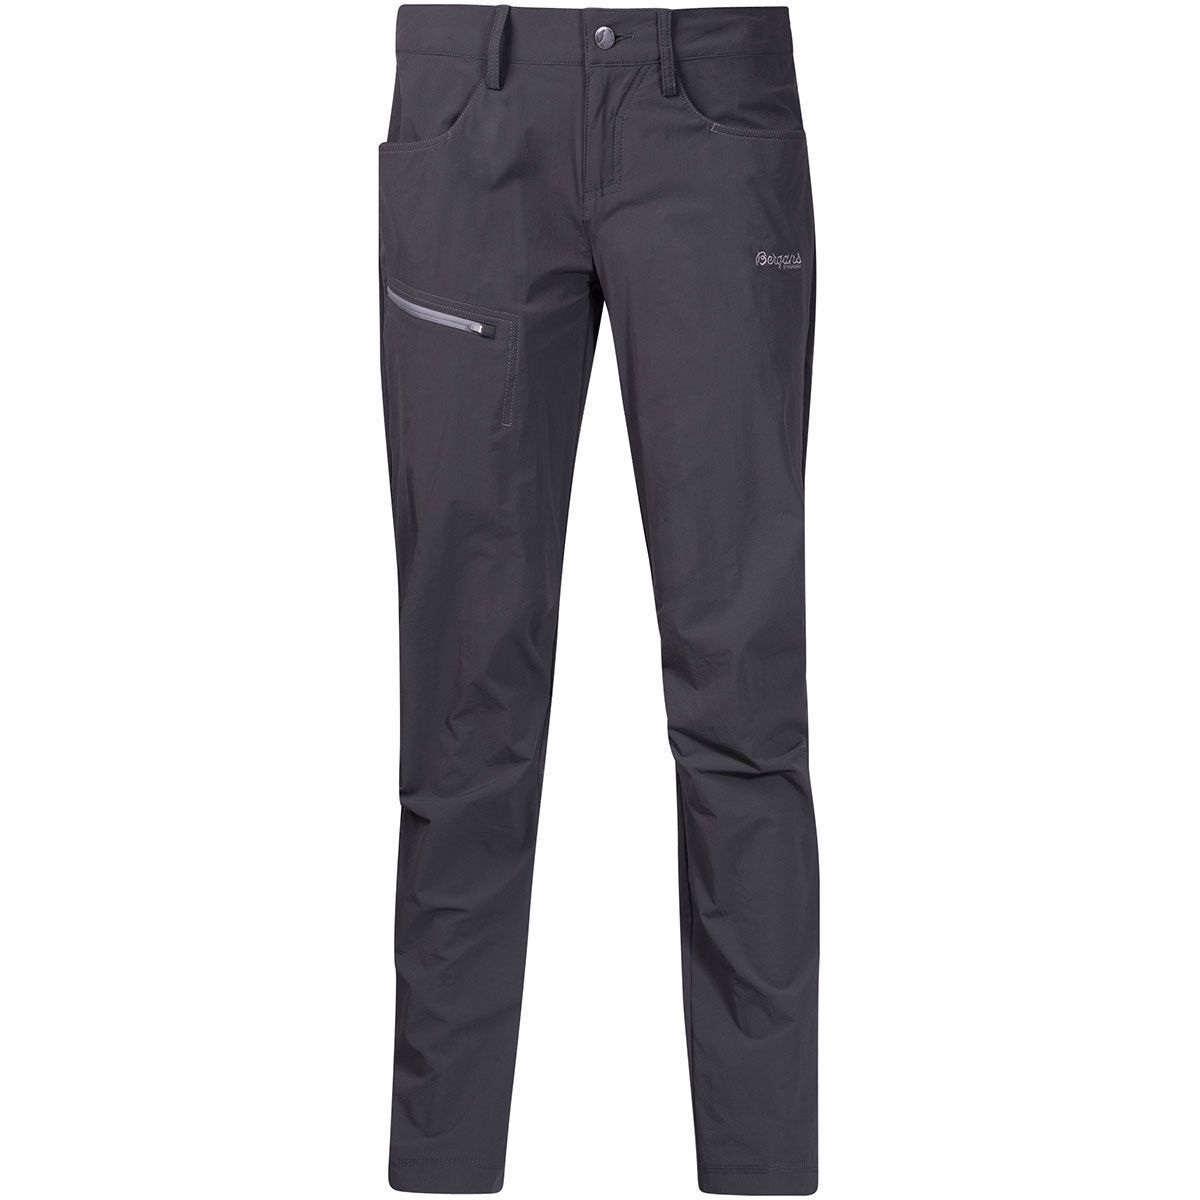 Bergans Moa LADY PANT Solid Charcoal Solid grigio Taglia XL Nuovo